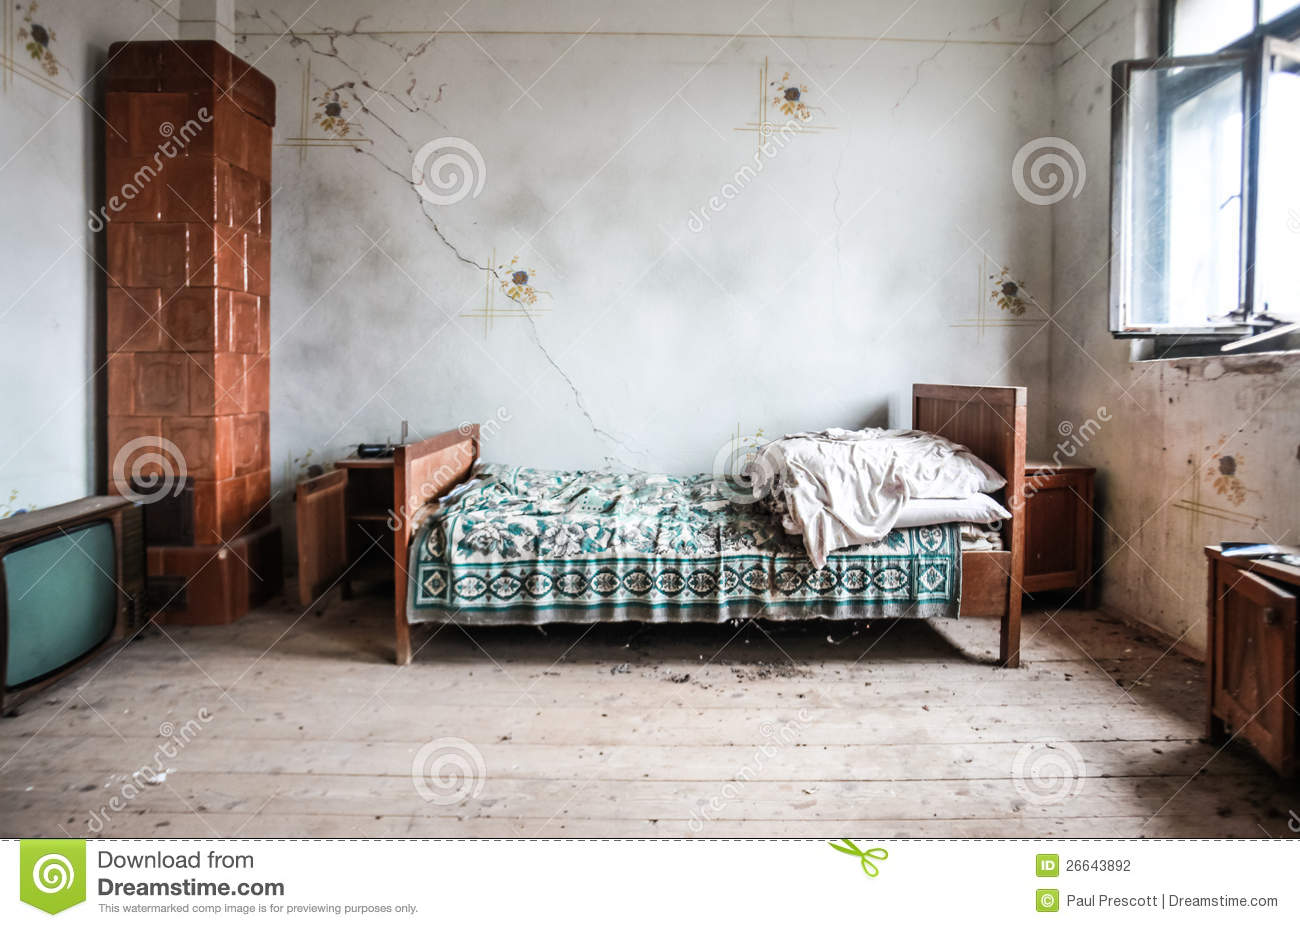 living room pictures clipart simple design abandoned bedroom stock photography - image: 26643892